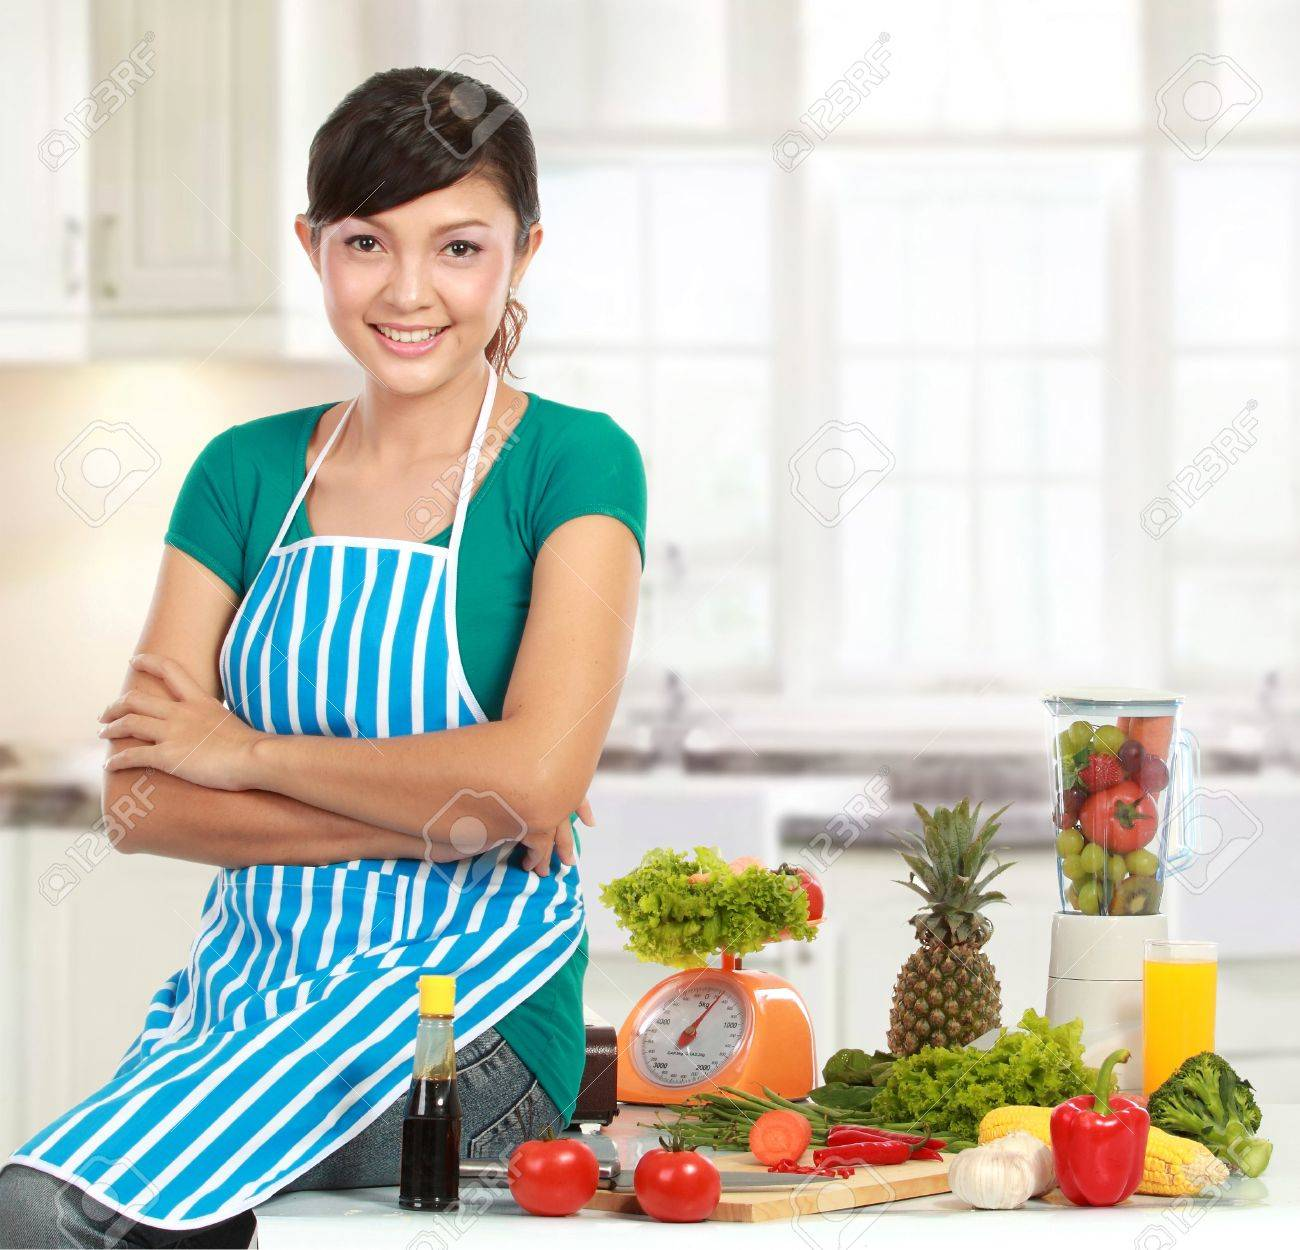 Beautiful woman preparing ingredient  on the table to cook something Stock Photo - 12371474